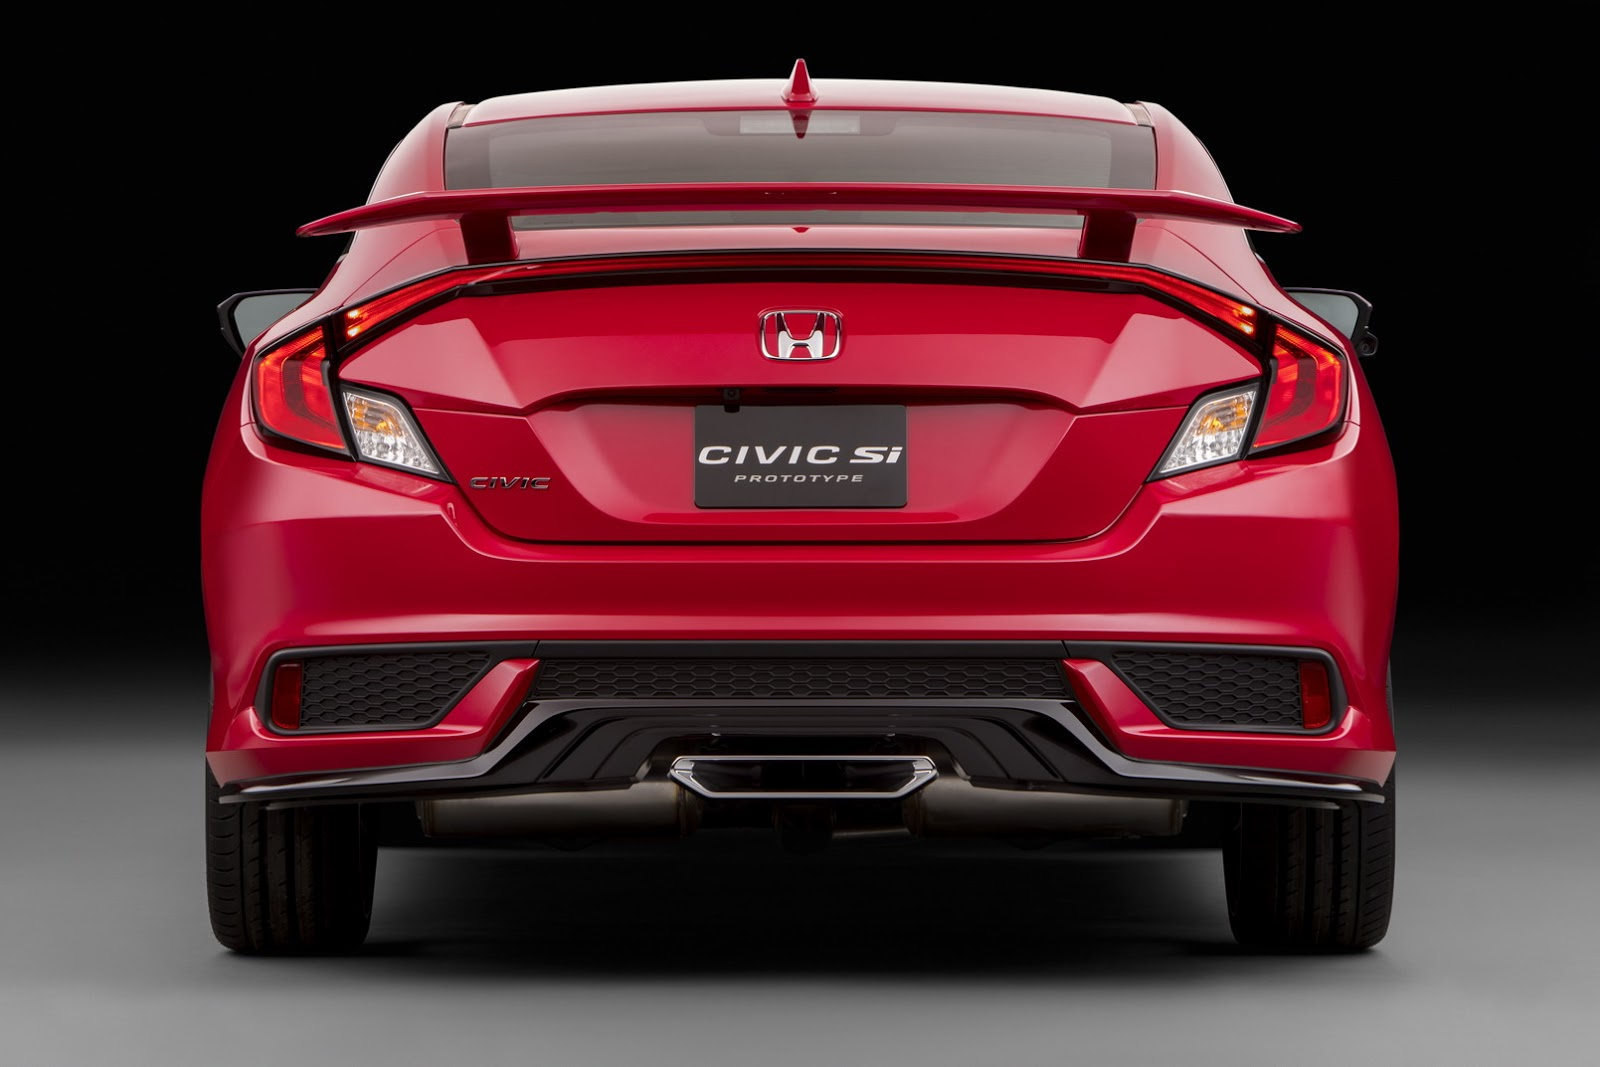 2017 Honda Civic Si Revealed With 1.5-Liter Turbo Engine - autoevolution